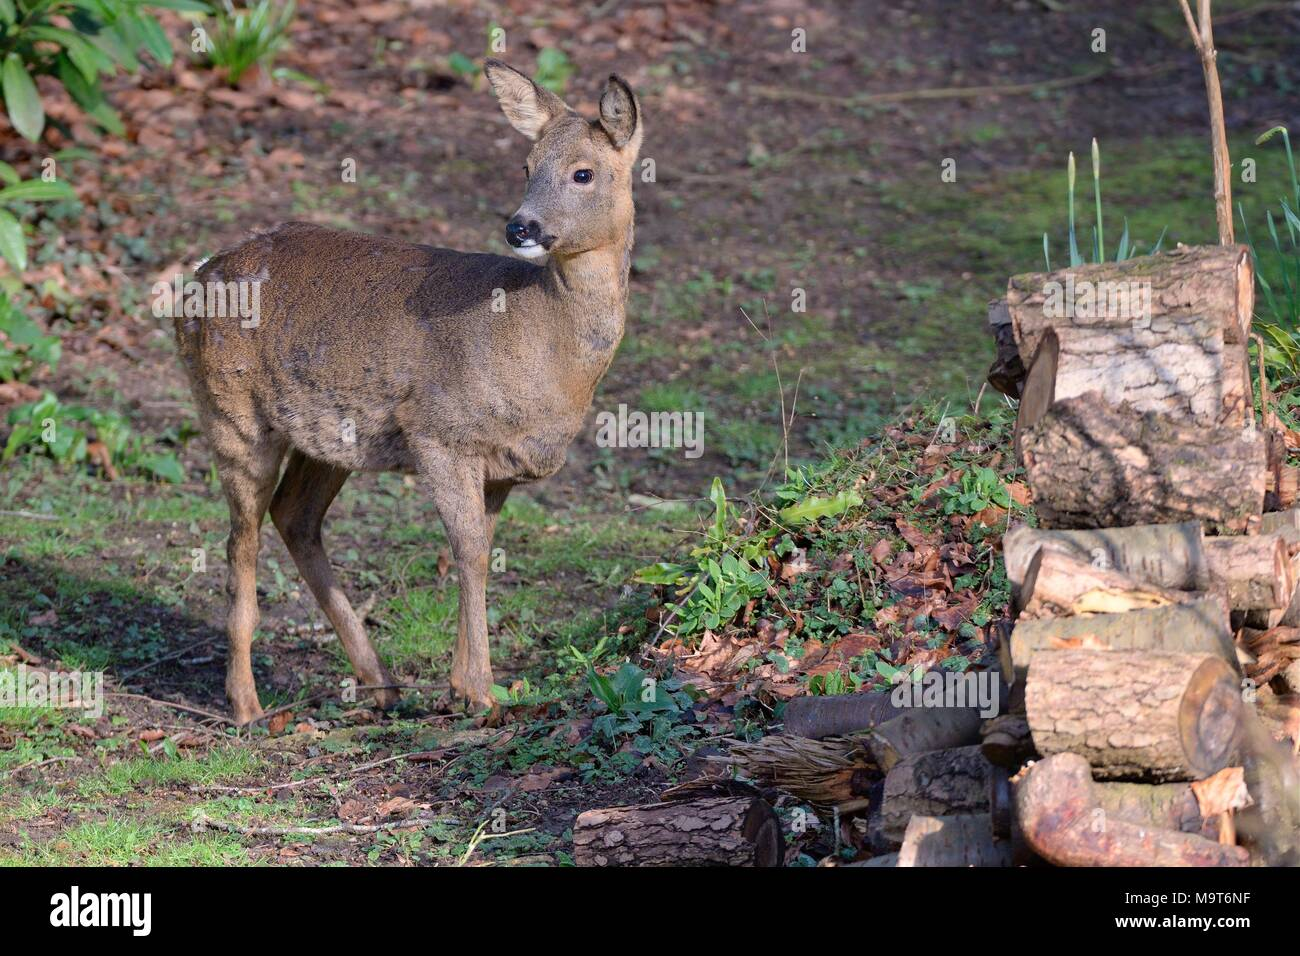 Roe deer (Capreolus capreolus) doe visiting a garden in morning sunlight to graze, with its ears pricked after hearing human sounds, Wiltshire, UK. - Stock Image